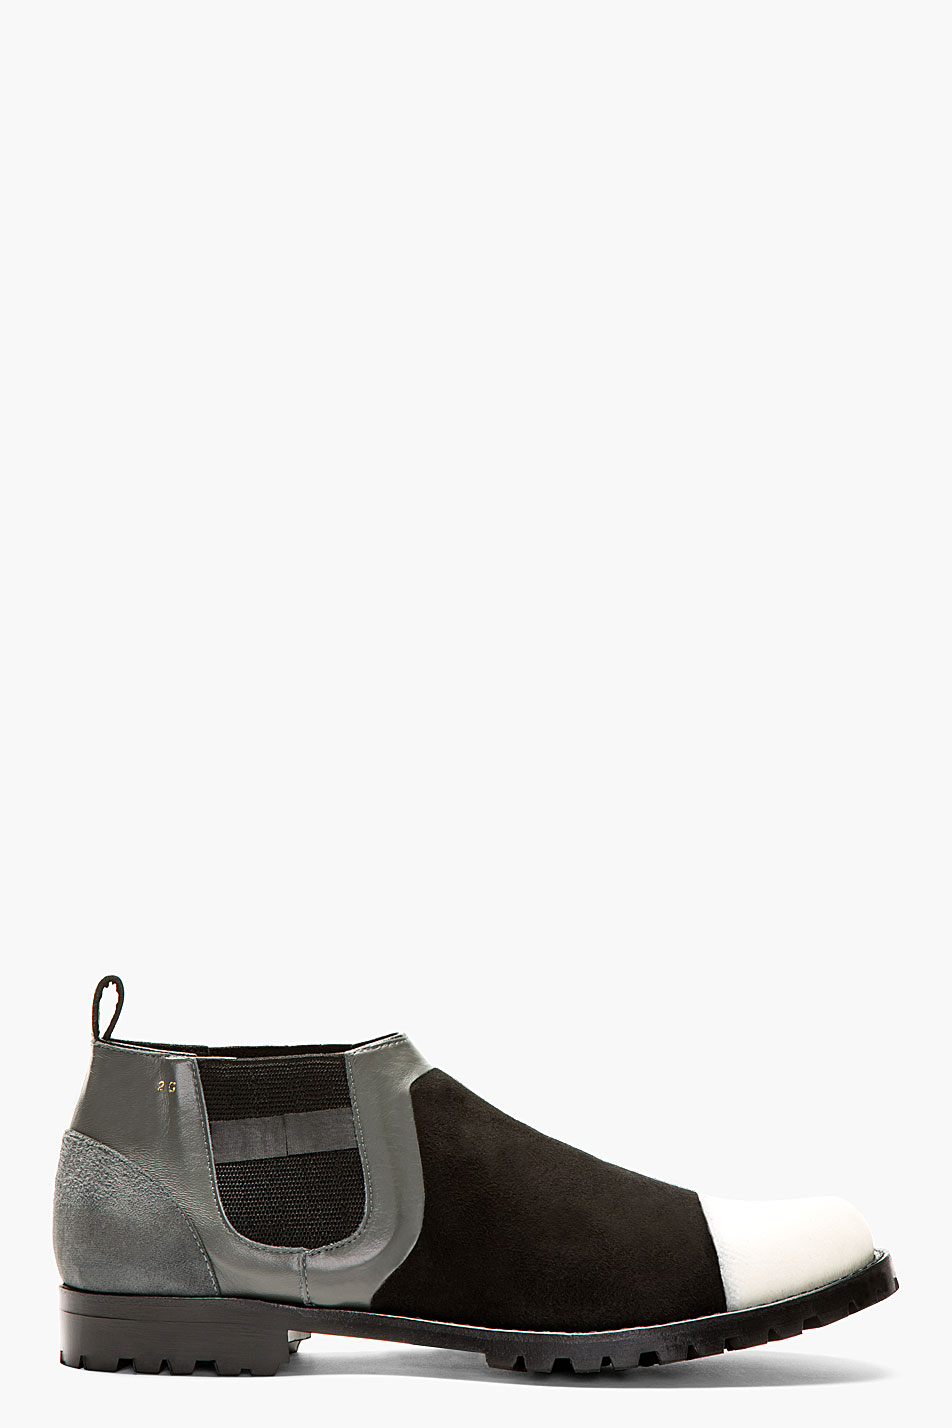 comme des garons homme plus black and grey textured panelled chelsea boots